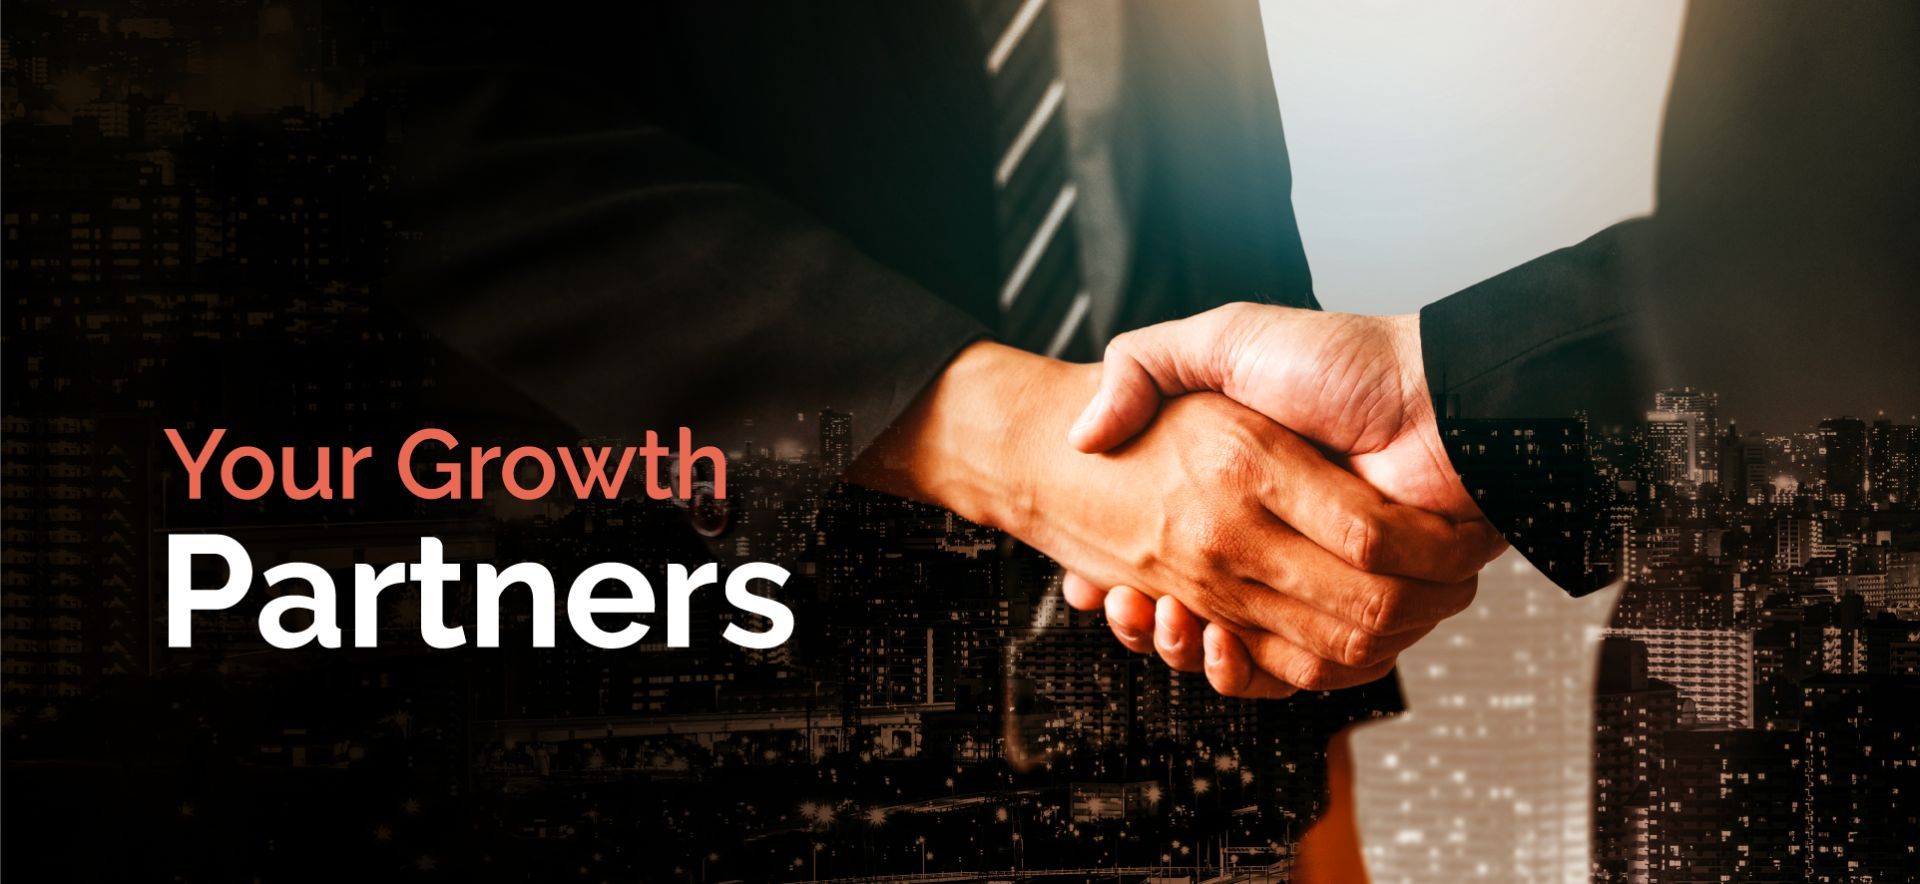 Your Growth Partner